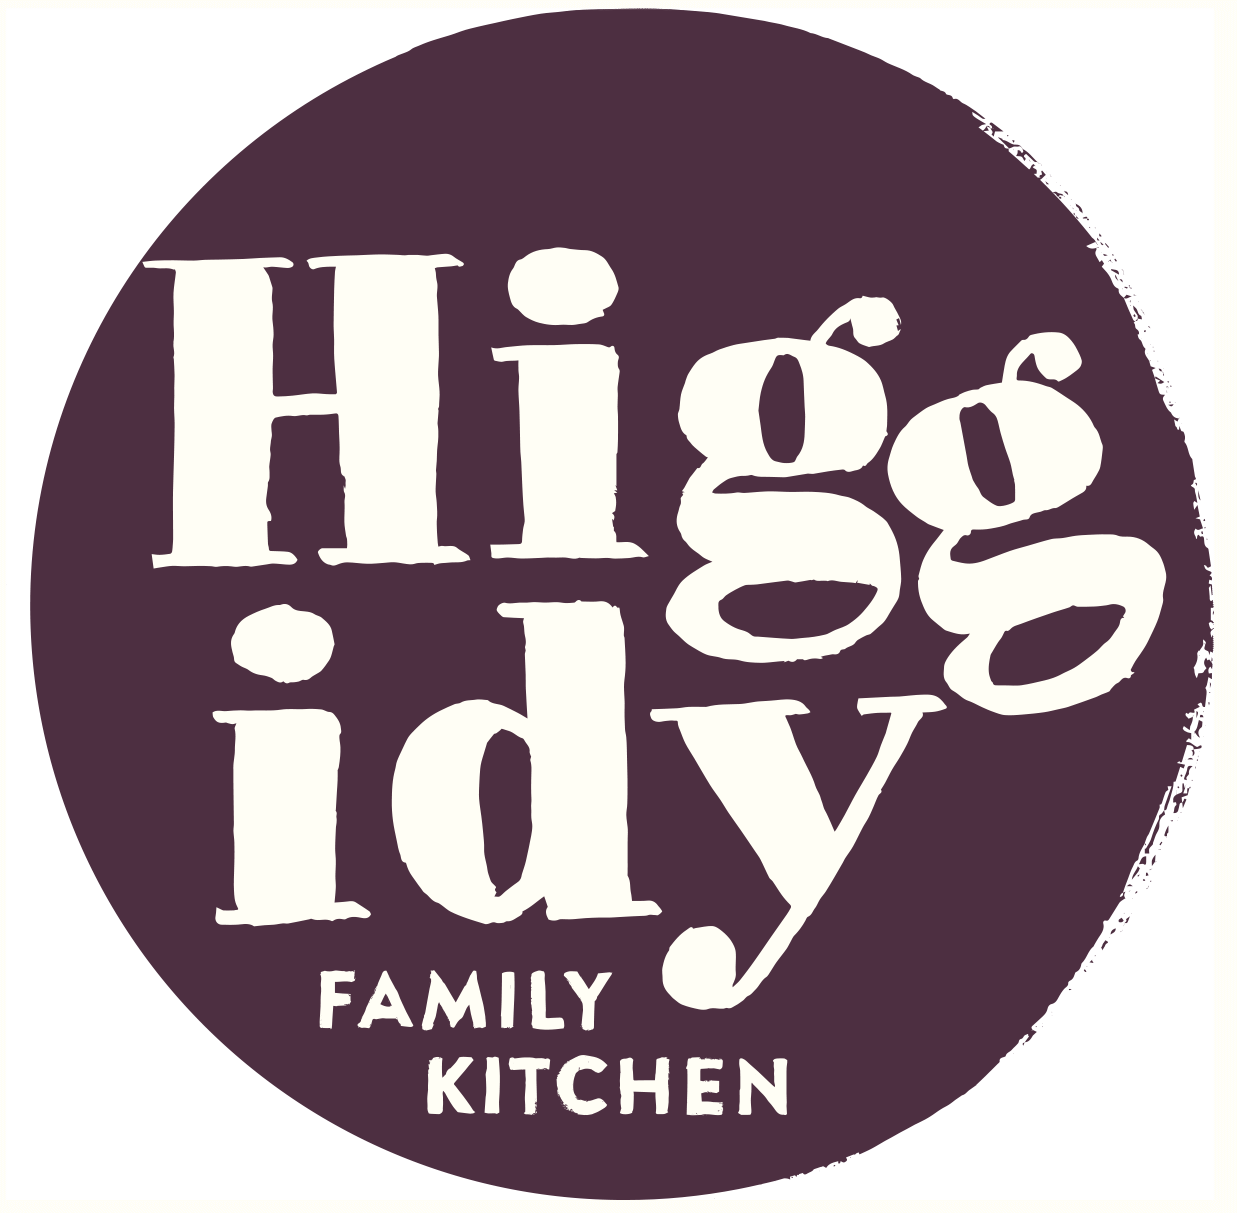 Higgidy Family Kitchen